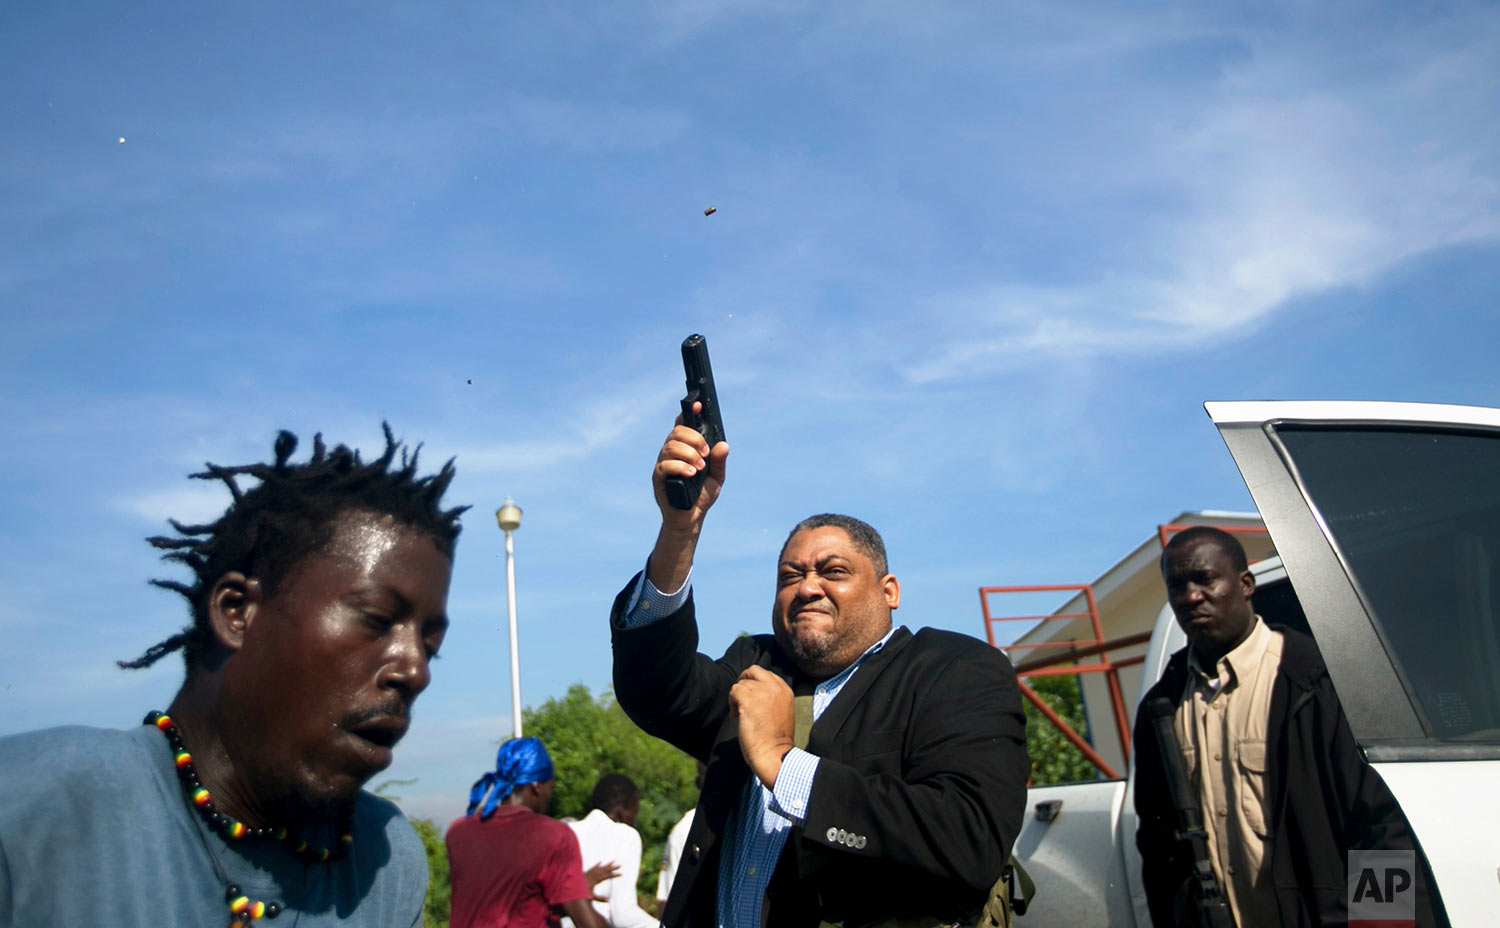 Ruling party Sen. Ralph Fethiere fires his gun outside Parliament as he arrives for a vote on the ratification of Fritz William Michel's nomination as prime minister in Port-au-Prince, Haiti, Monday, Sept. 23, 2019. Opposition members confronted ruling-party senators, and Fethiere pulled a pistol when protesters rushed at him and members of his entourage. The vote was cancelled. (AP Photo/Dieu Nalio Chery)